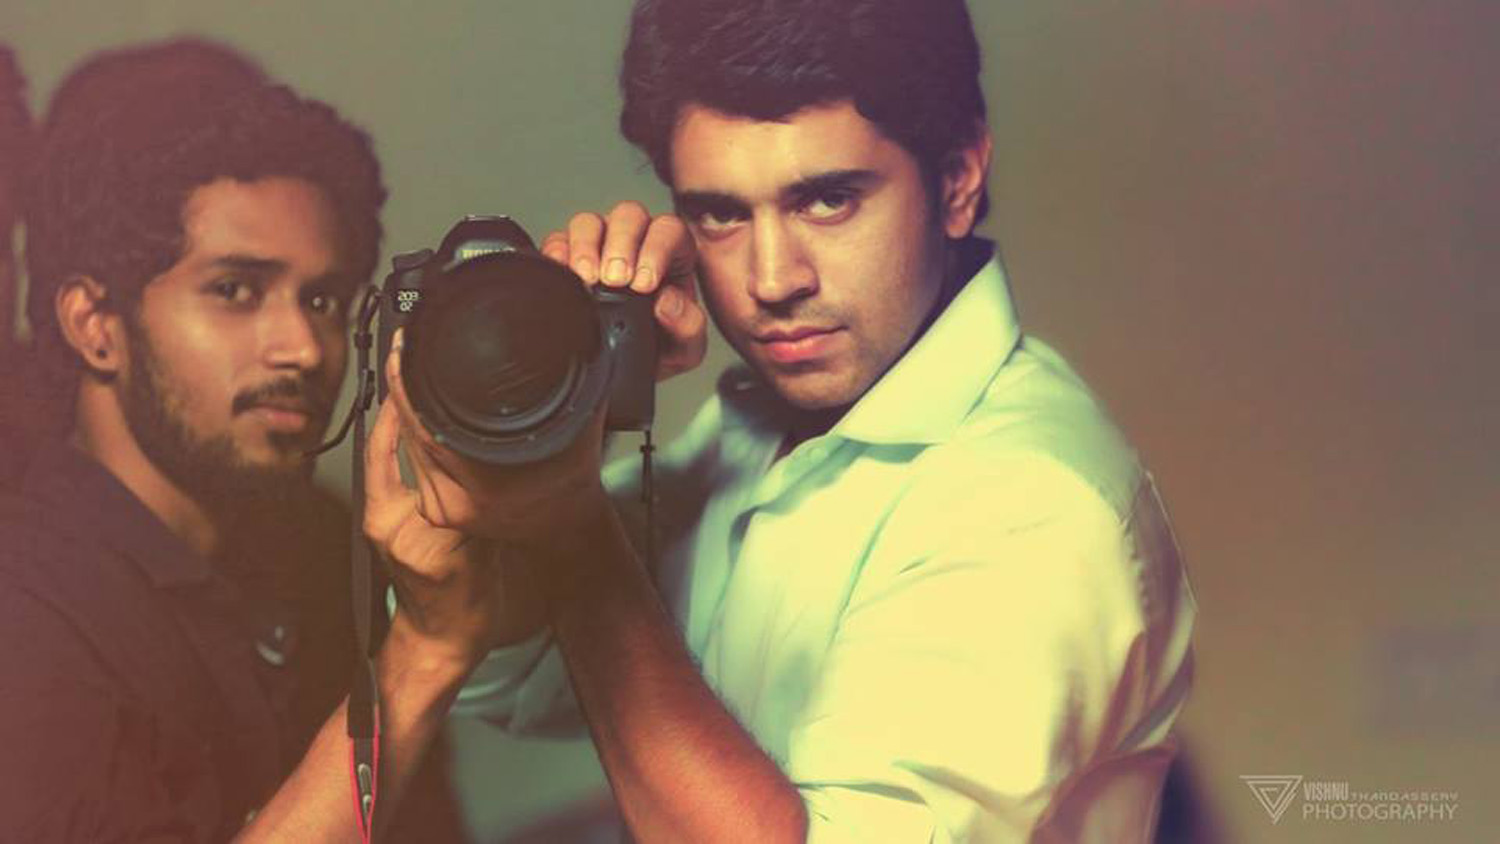 http://onlookersmedia.in/wp-content/uploads/2015/04/Nivin-Pauly-Stills-Images-Photos-Malayalam-Movie-2015-Onlookers-Media-4.jpg